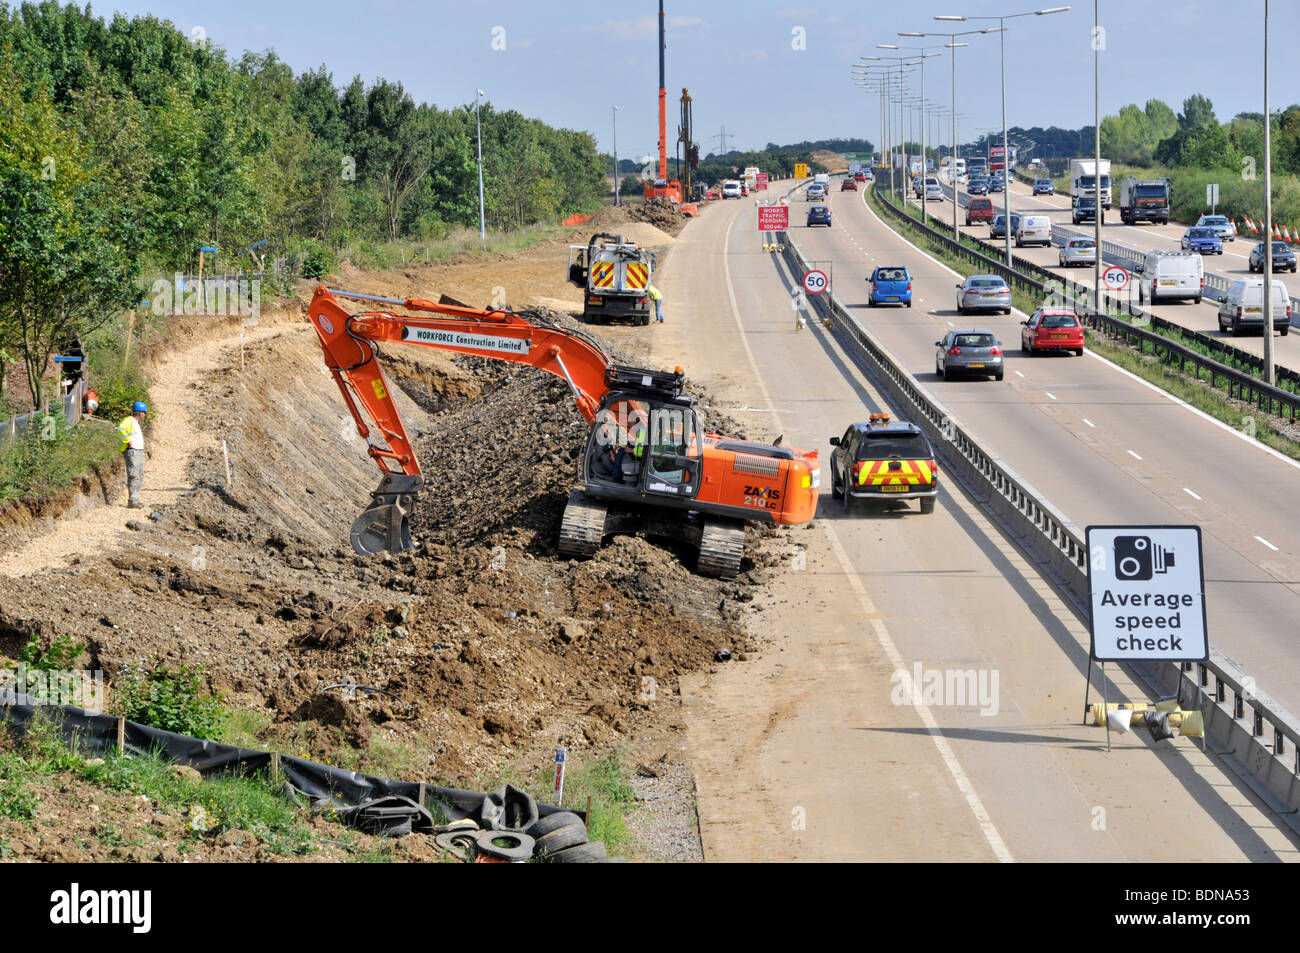 M25 road widening project with contra flow in operation - Stock Image